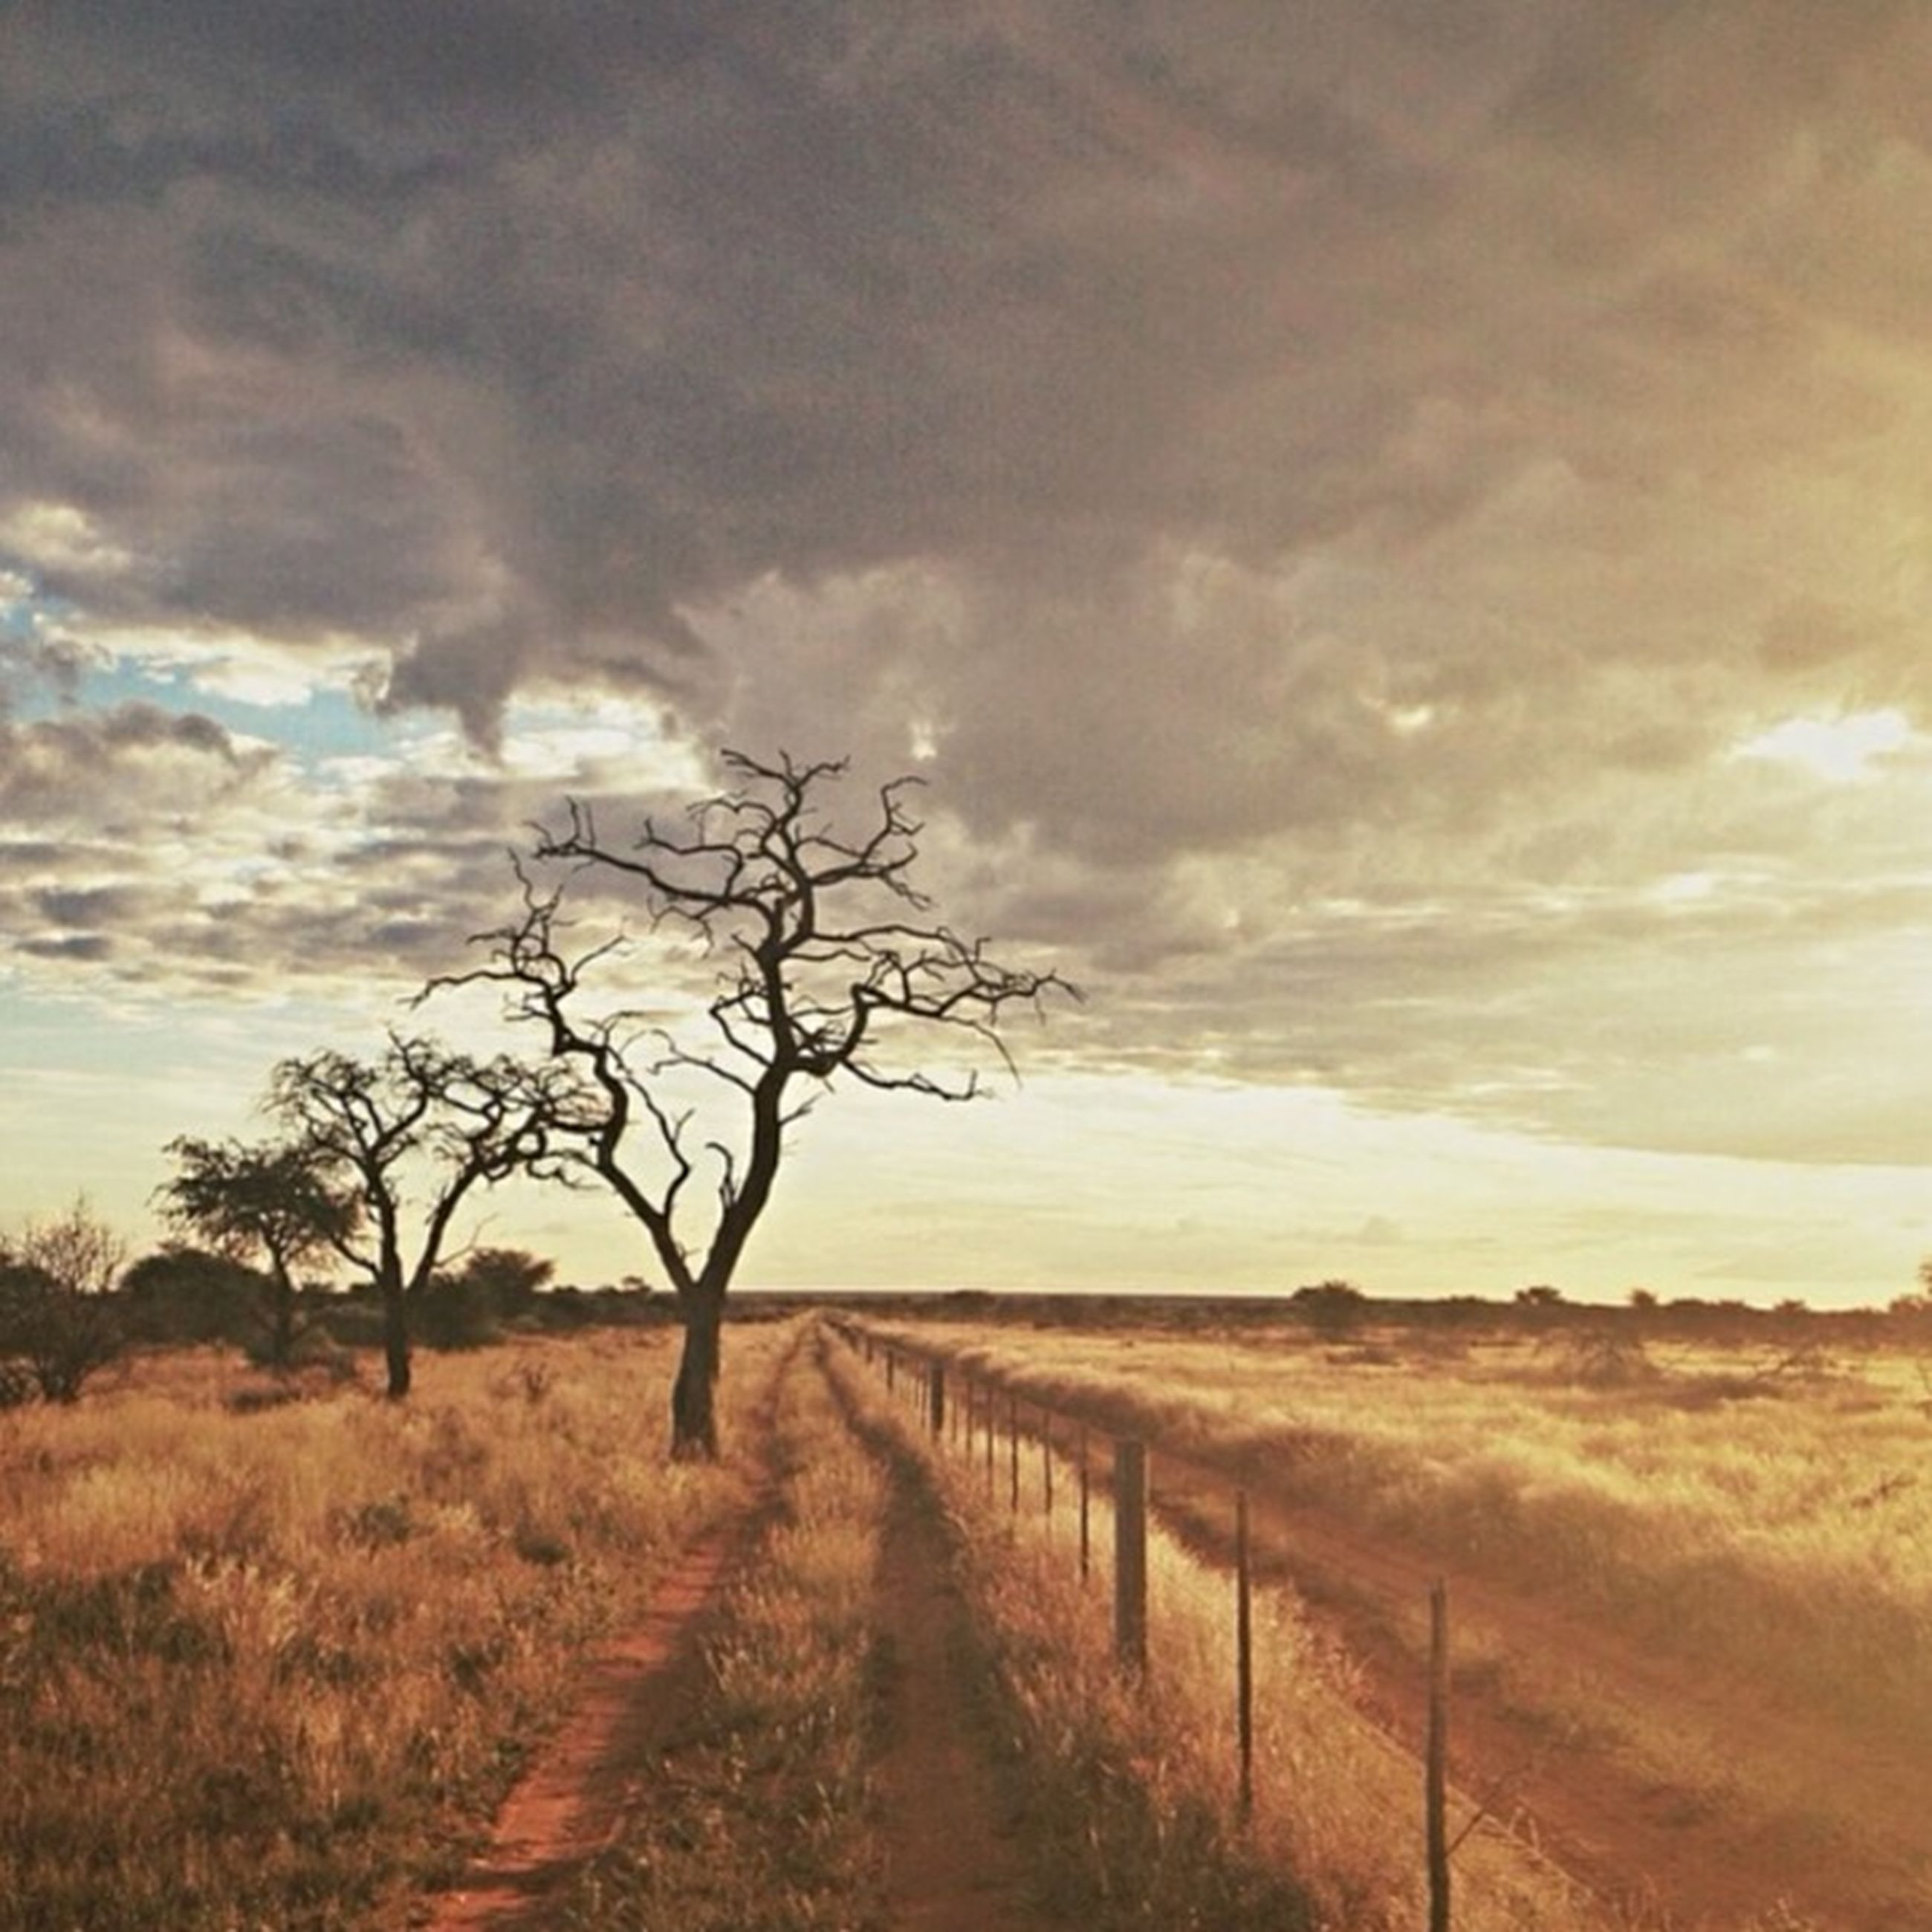 tranquility, tranquil scene, sky, bare tree, the way forward, scenics, landscape, beauty in nature, nature, cloud - sky, grass, field, sunset, tree, dirt road, cloud, non-urban scene, water, cloudy, idyllic